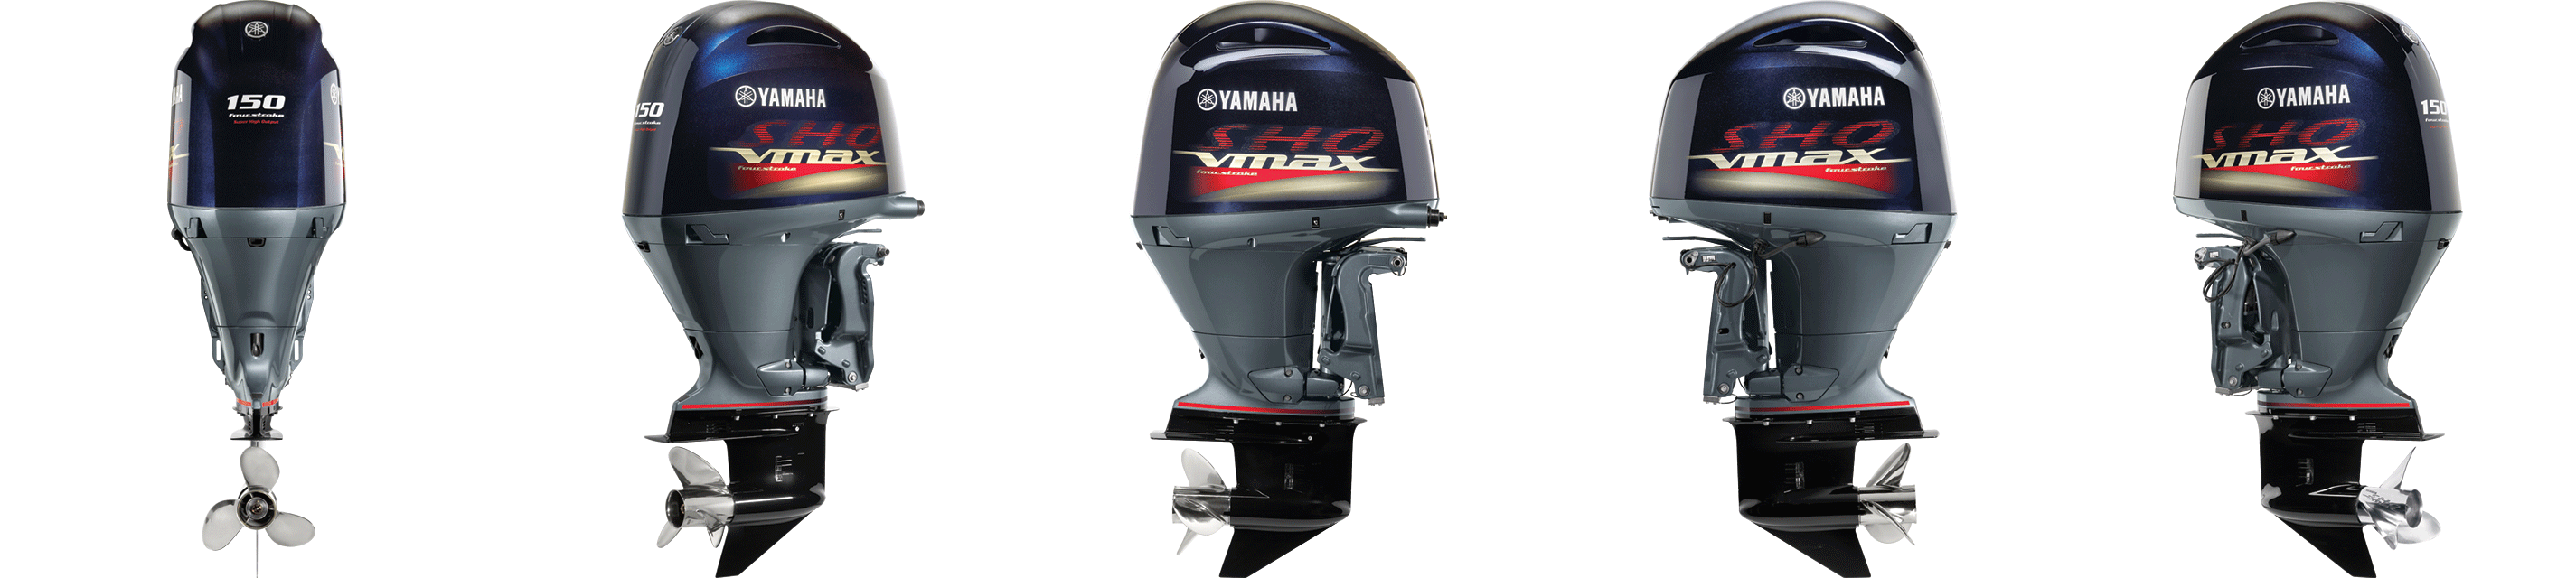 V Max In Line 4 Yamaha Outboards 150 Outboard Wiring And Is Measured Without Motor Oil Gearcase Propeller Except Models 25 Hp Under Which Include A Standard